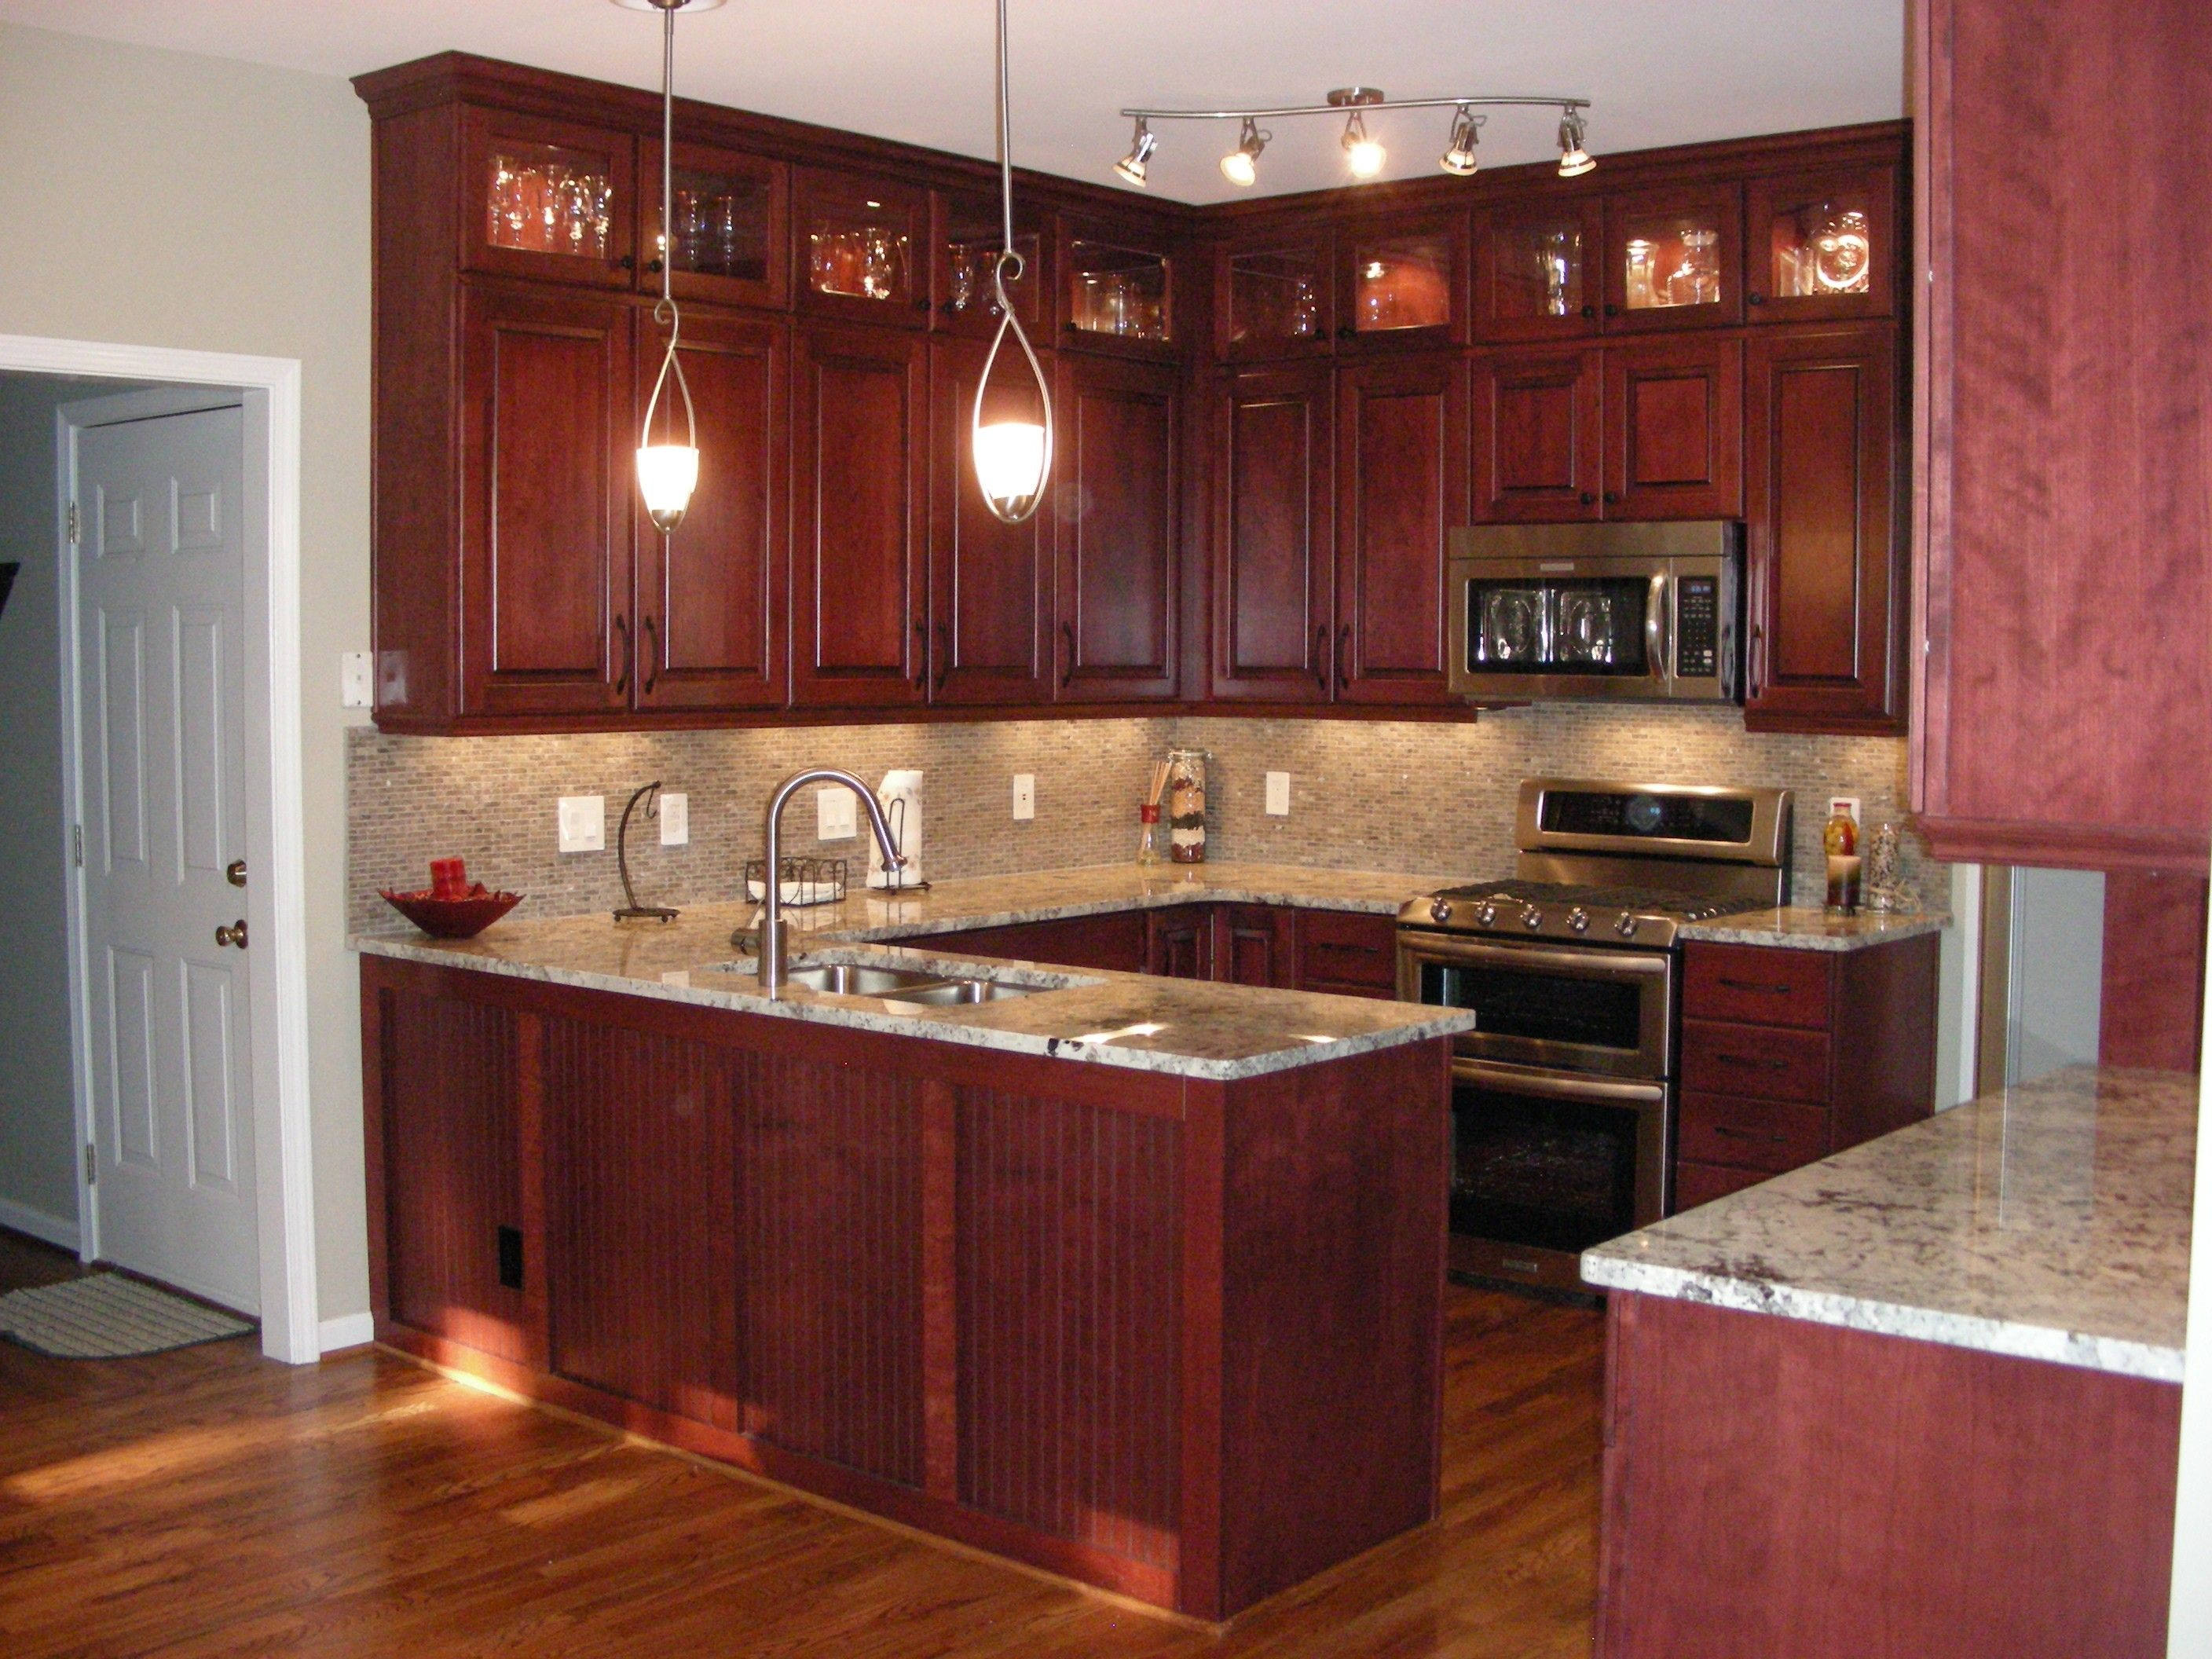 Cherry Cabinets U Shaped Kitchen Villa Cherry Kitchen Cabinets White And Cherry Kitchen Kitchen Remodel Small Cherry Wood Kitchens Cherry Wood Kitchen Cabinets